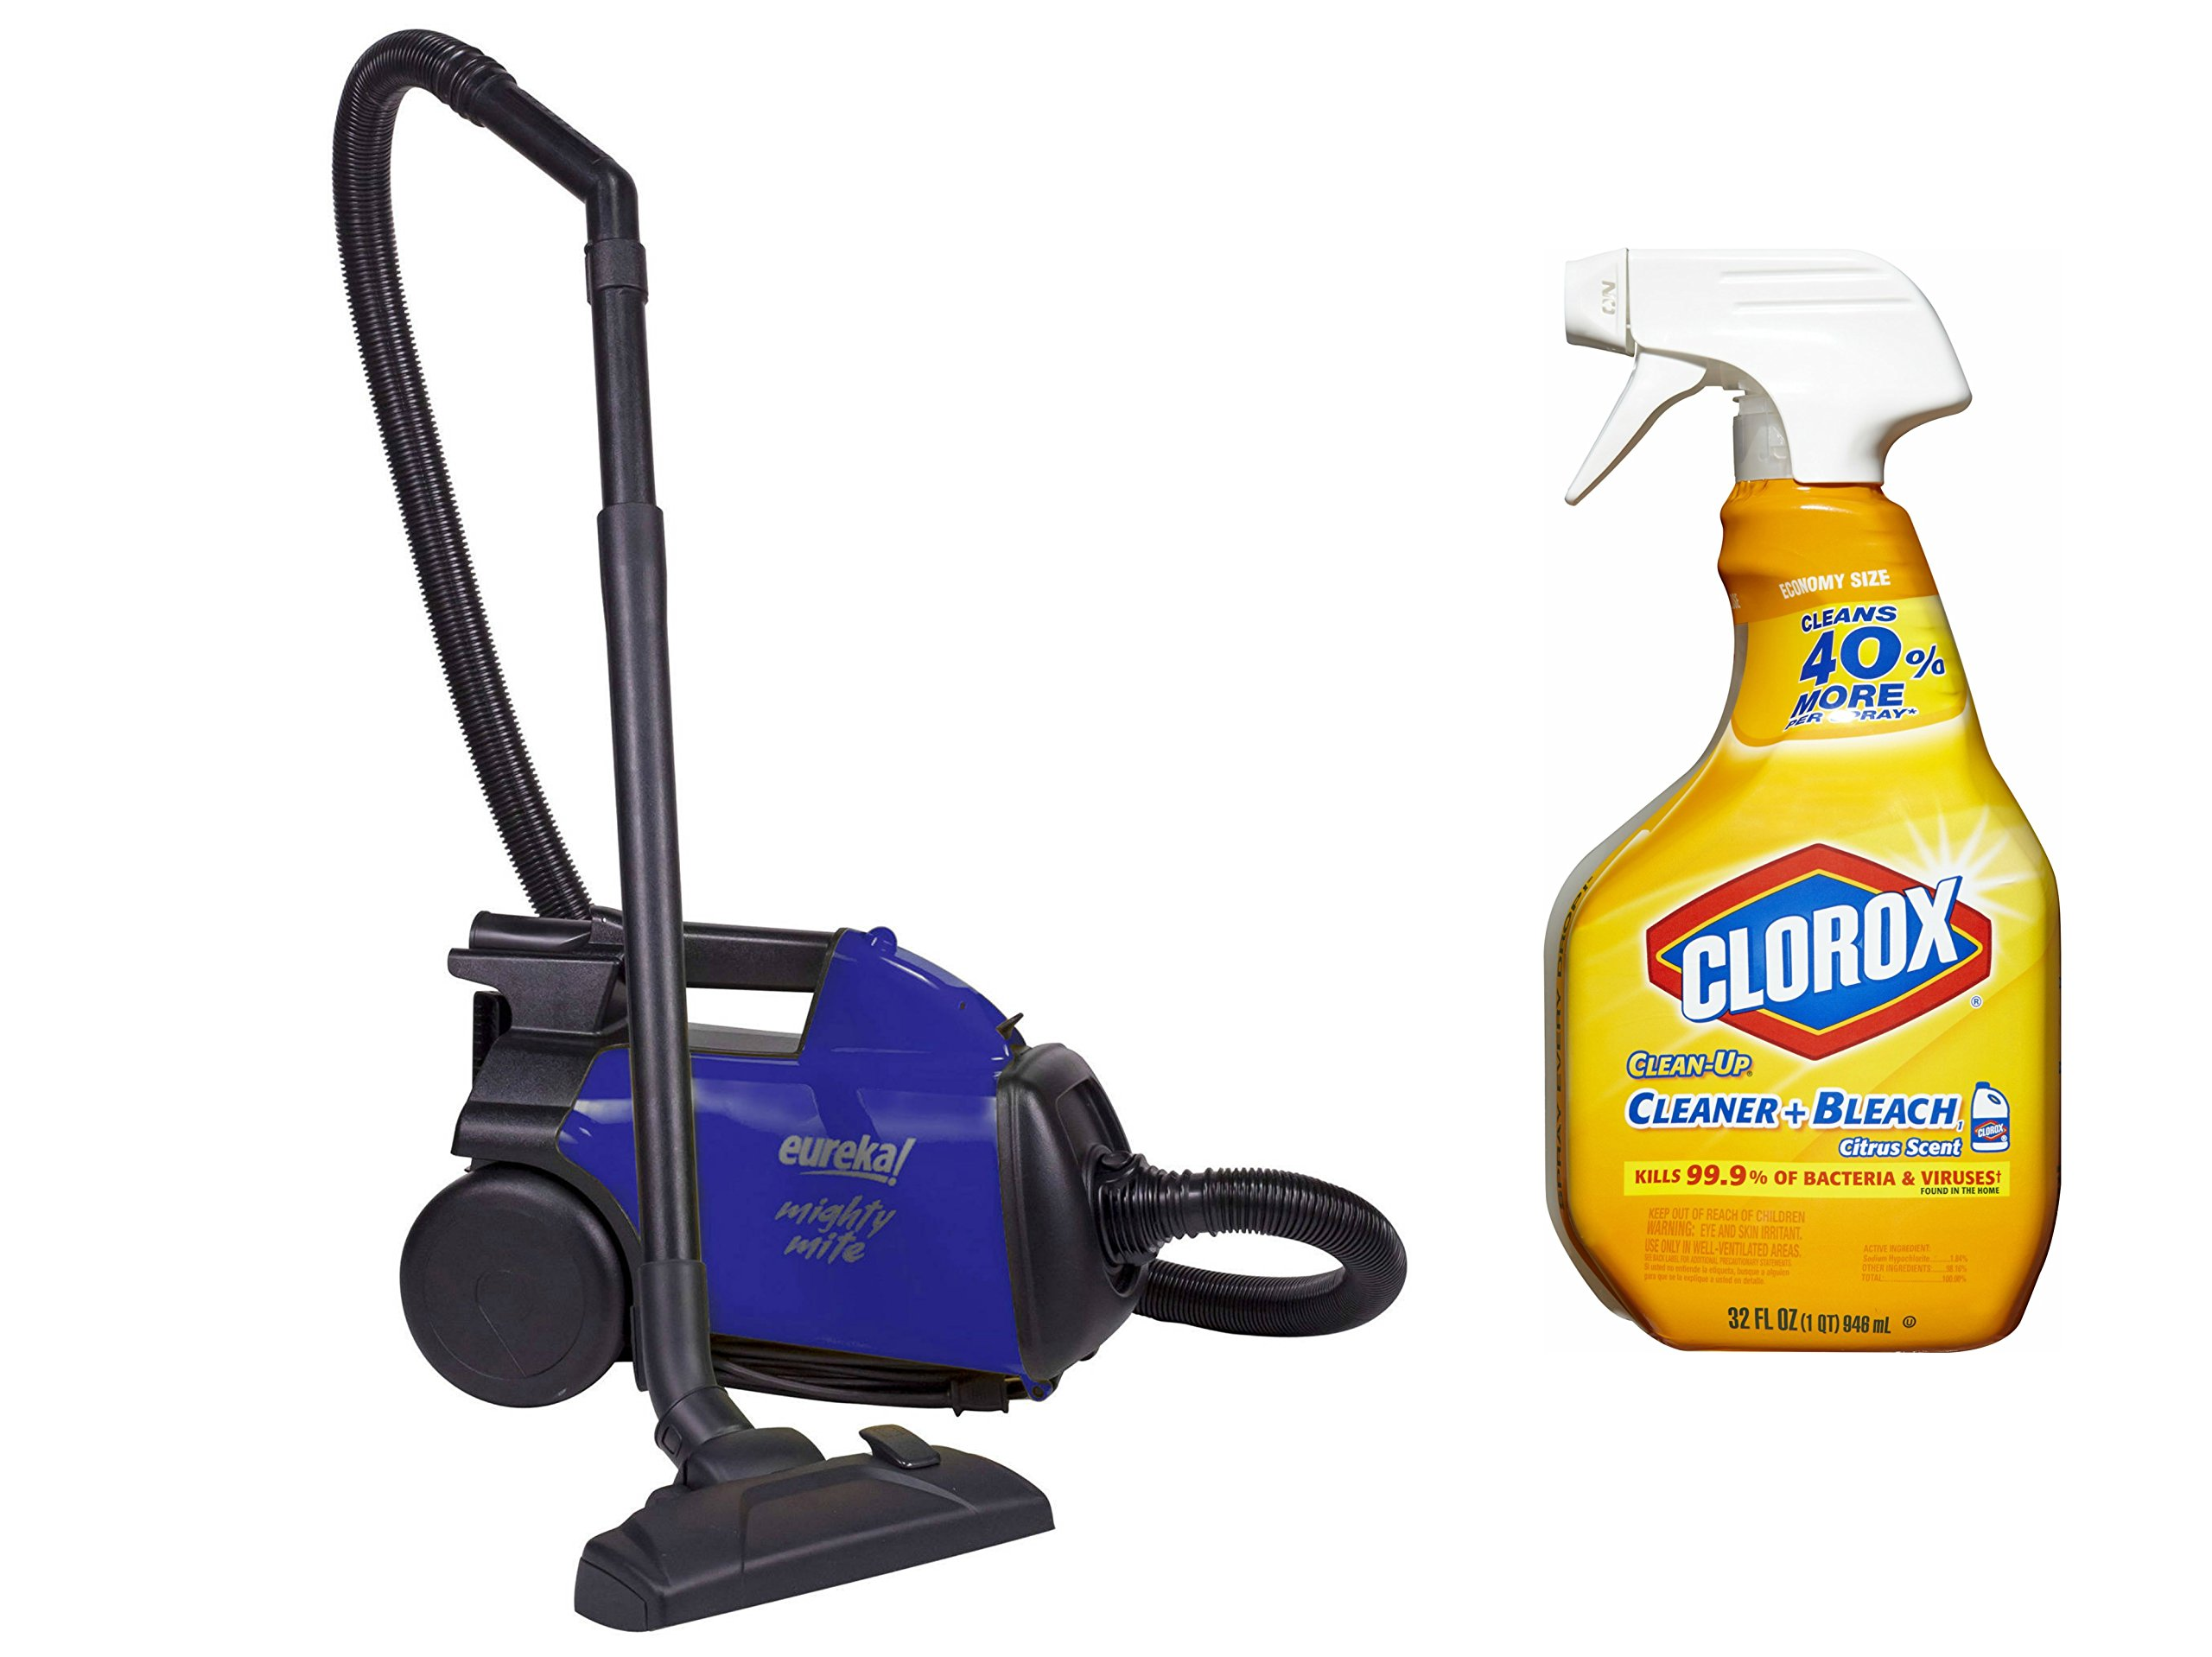 Eureka Mighty Mite Bagged Canister Vacuum, 3670H with Clorox 32-Ounce Clean-Up All Purpose Cleaner with Bleach Citrus Scent, Spray Bottle